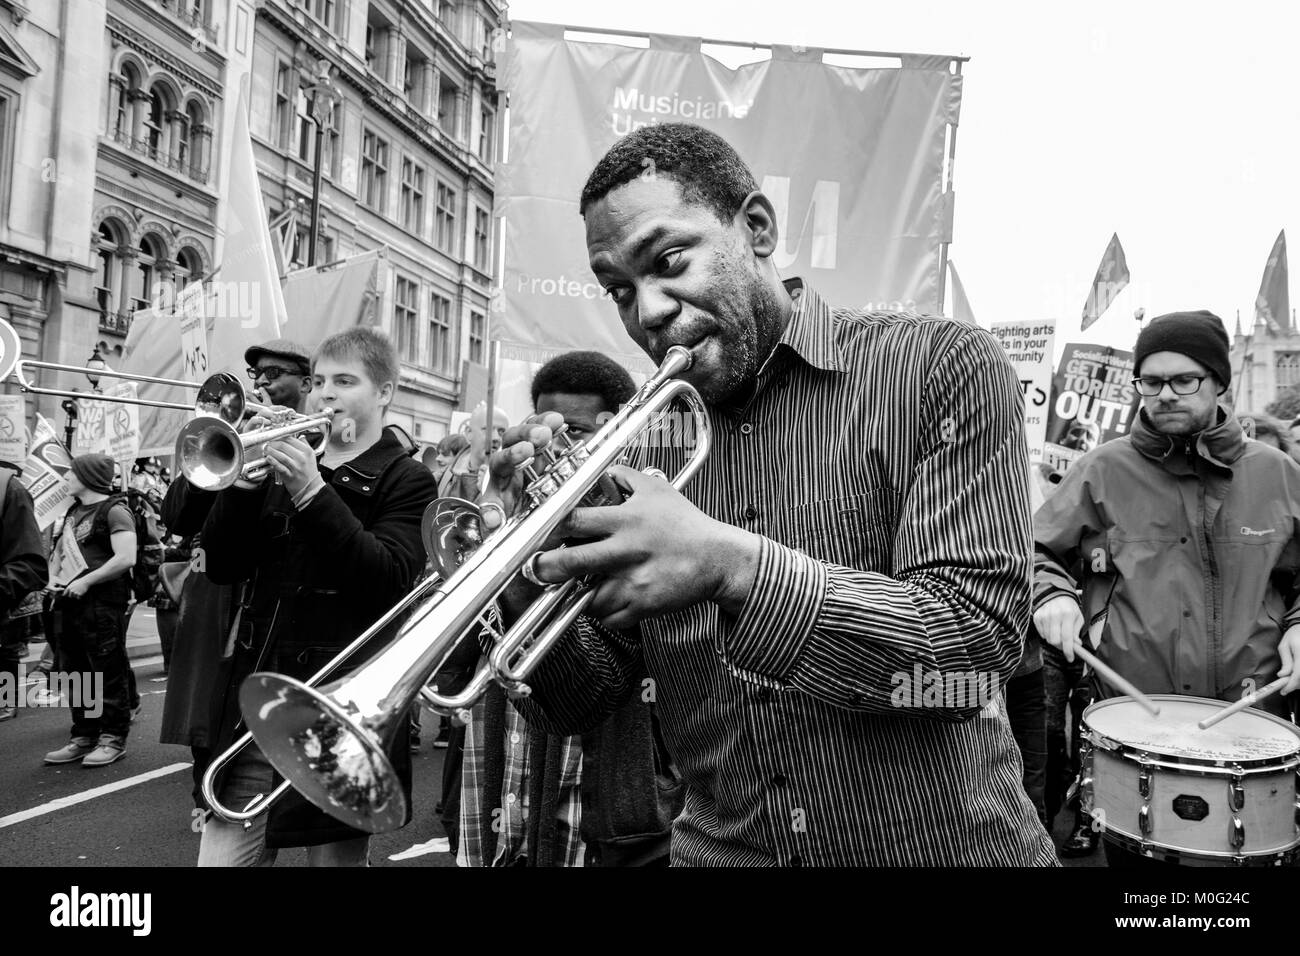 London black and white street photography: Members of the Musicians' Union perform along route of anti-austerity - Stock Image